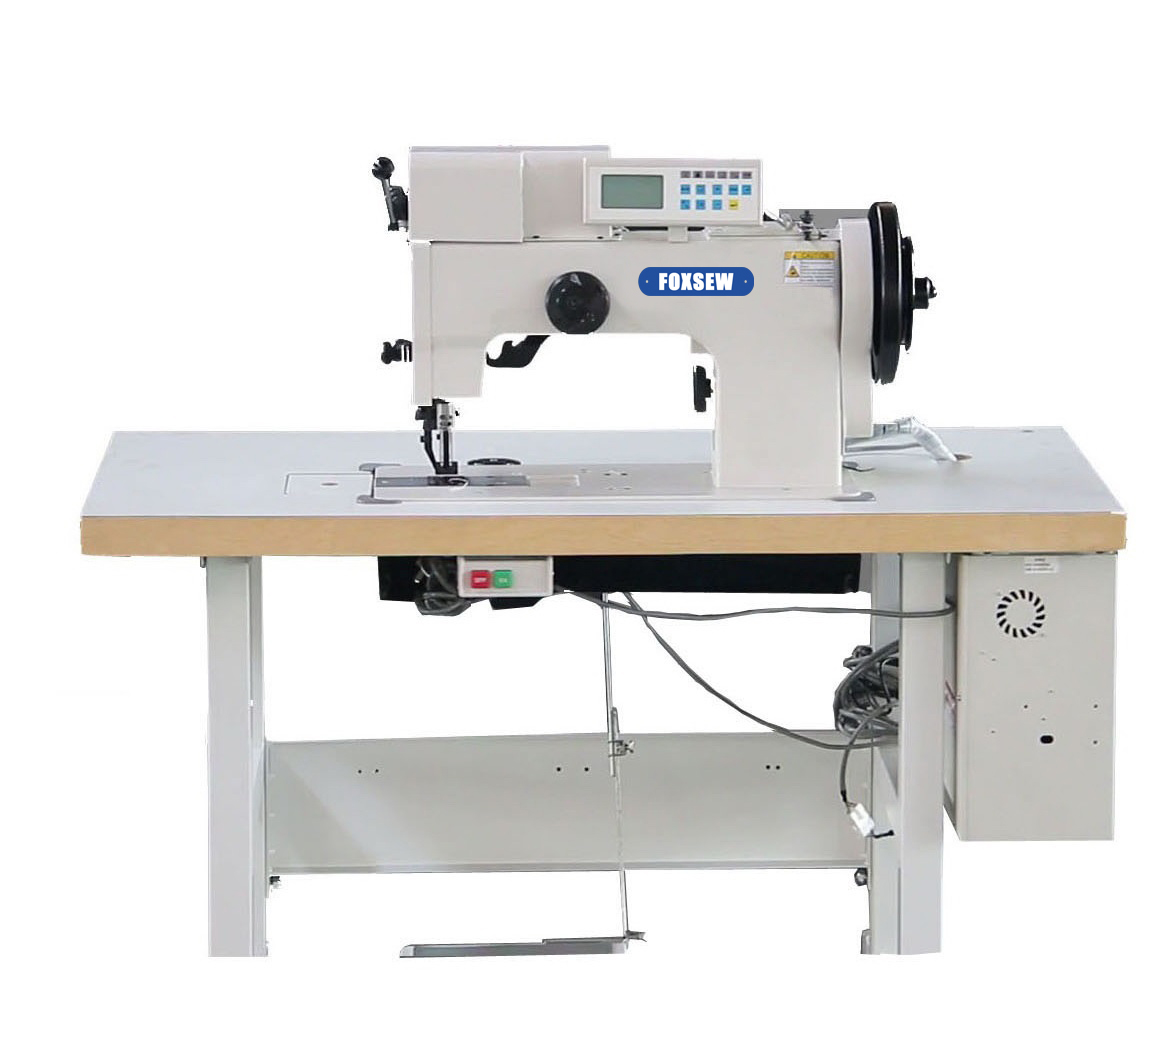 KD-204-106D Double Needle Heavy Duty Thick Thread Ornamental Decorative Stitch Sewing Machine